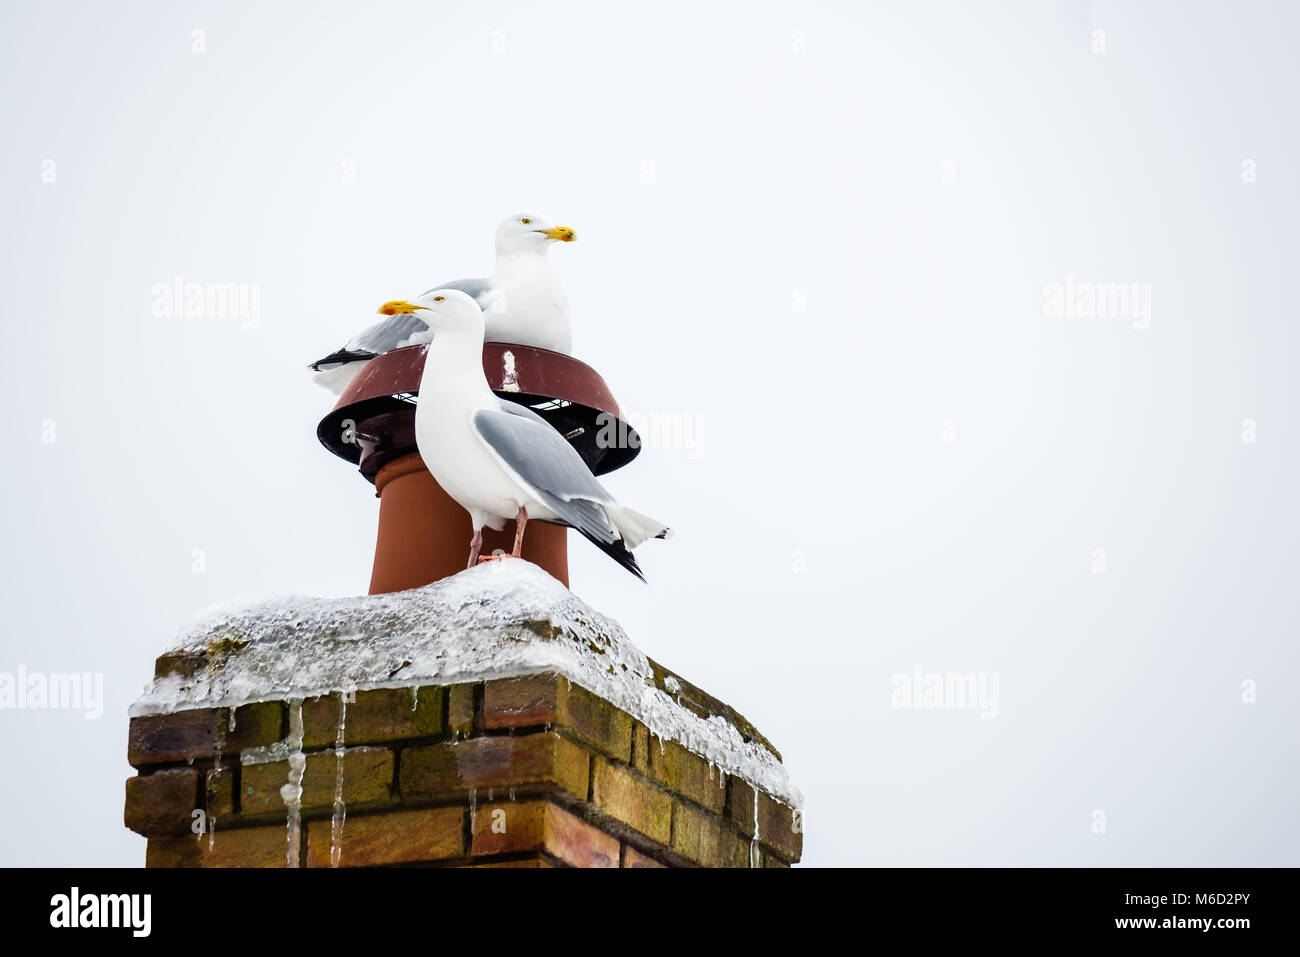 The warm chimney has certainly made these two seagulls very contented. - Stock Image